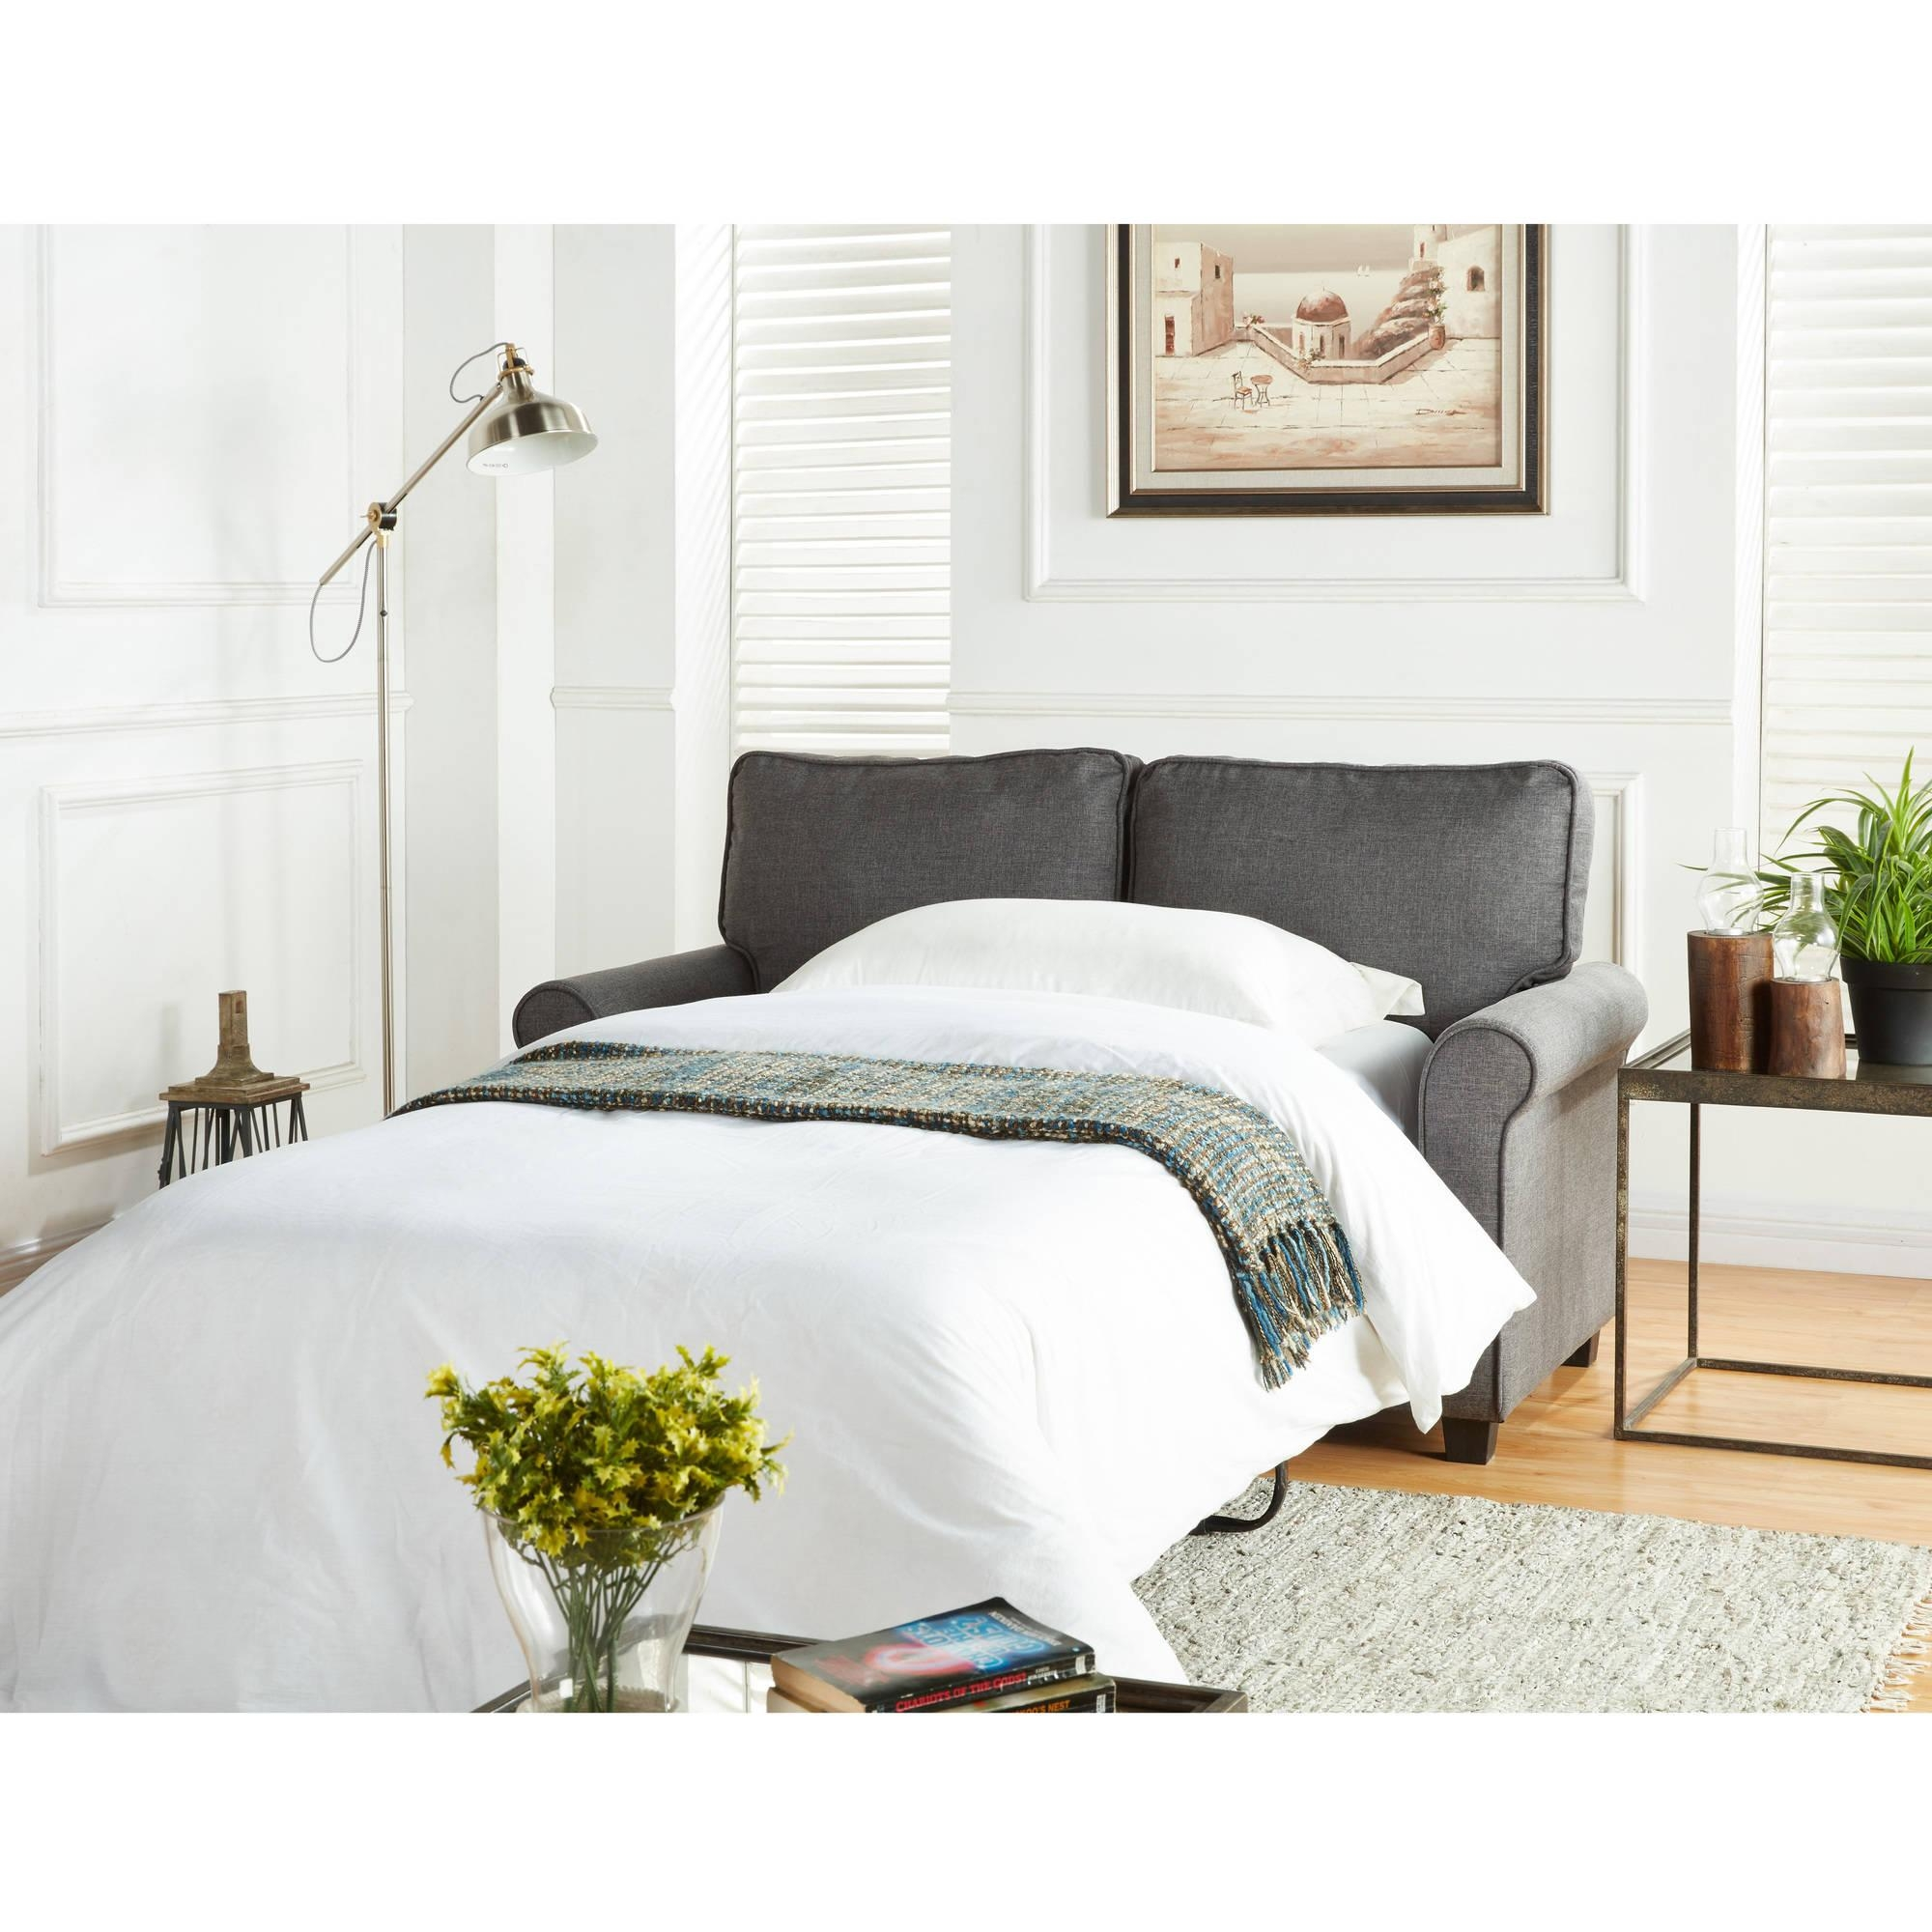 Mainstays Sofa Sleeper With Memory Foam Mattress, Grey – Walmart Intended For Mainstays Sleeper Sofas (View 19 of 20)